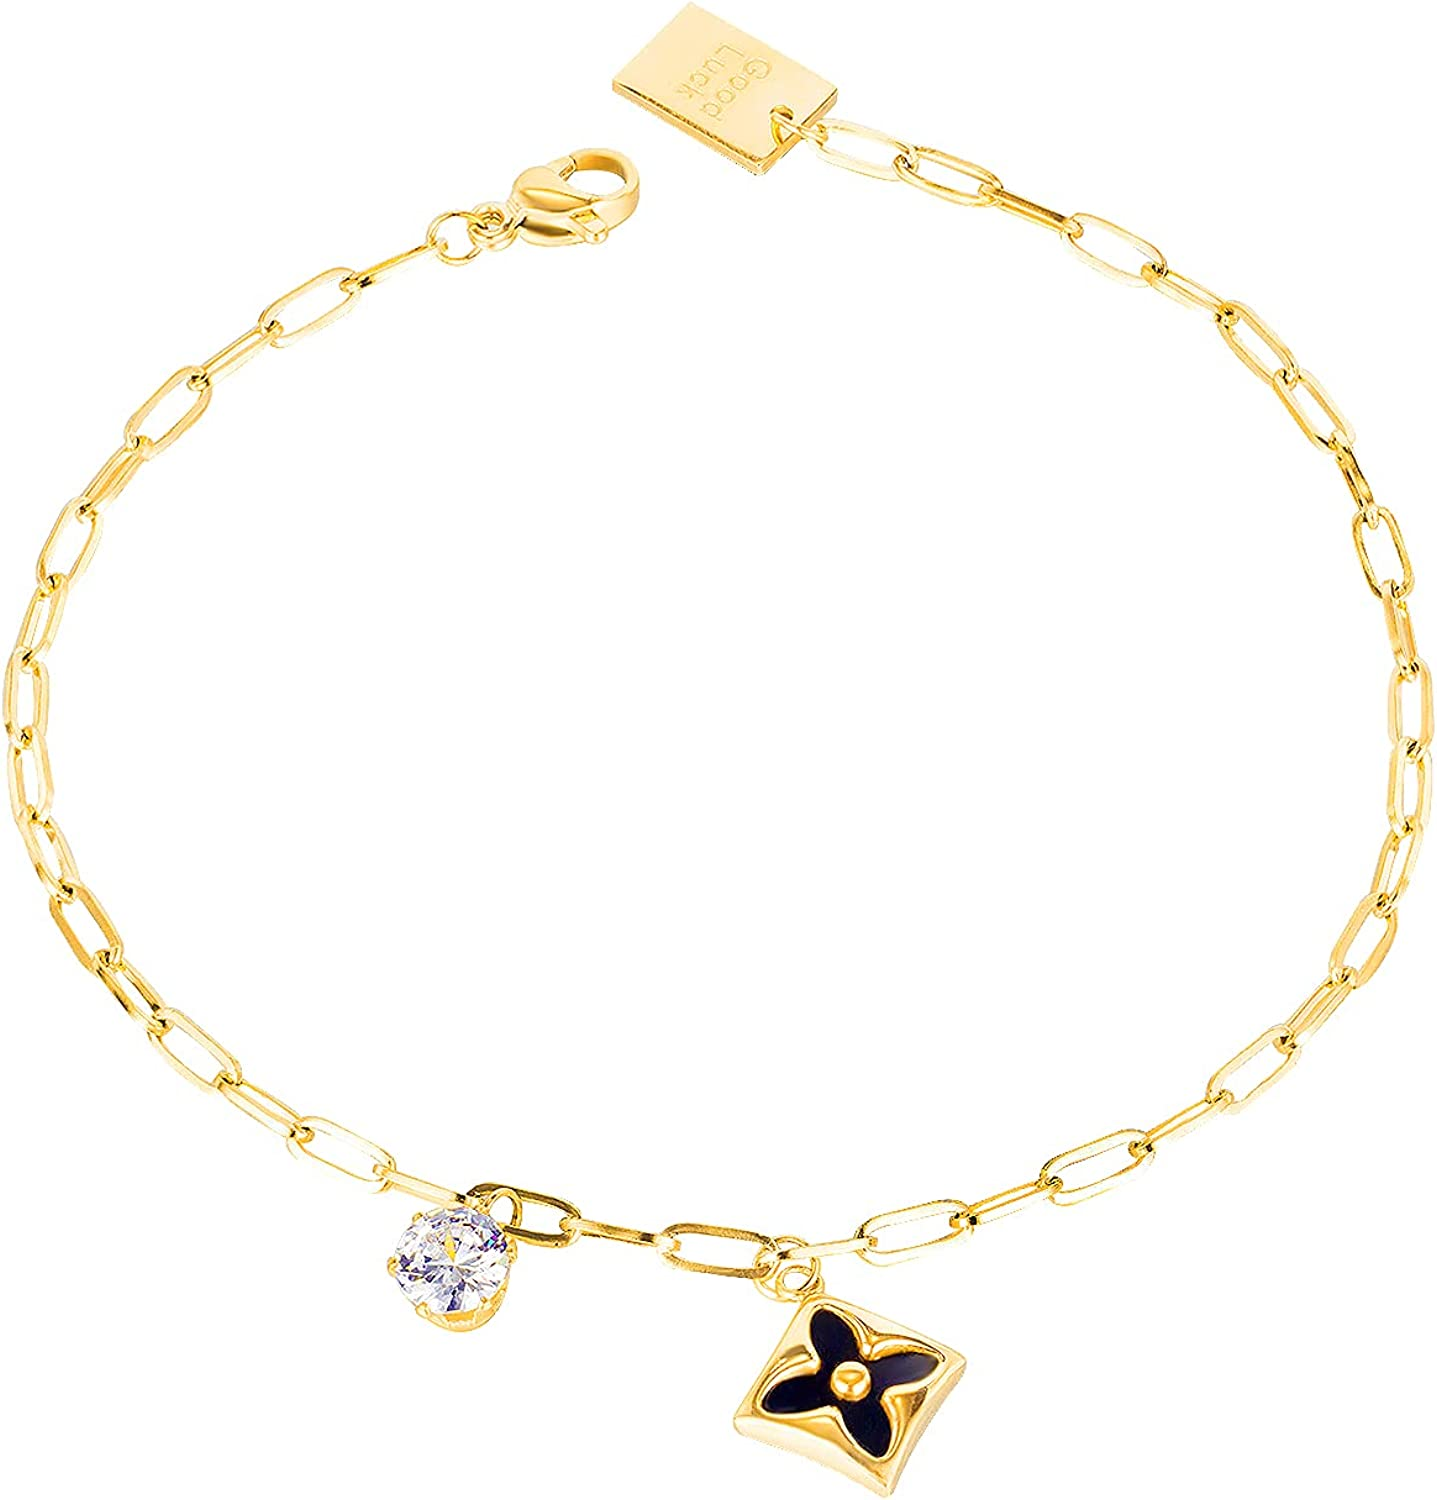 Stainless Steel Clover Anklet with Zirconia Round Pendant Gift for Girls